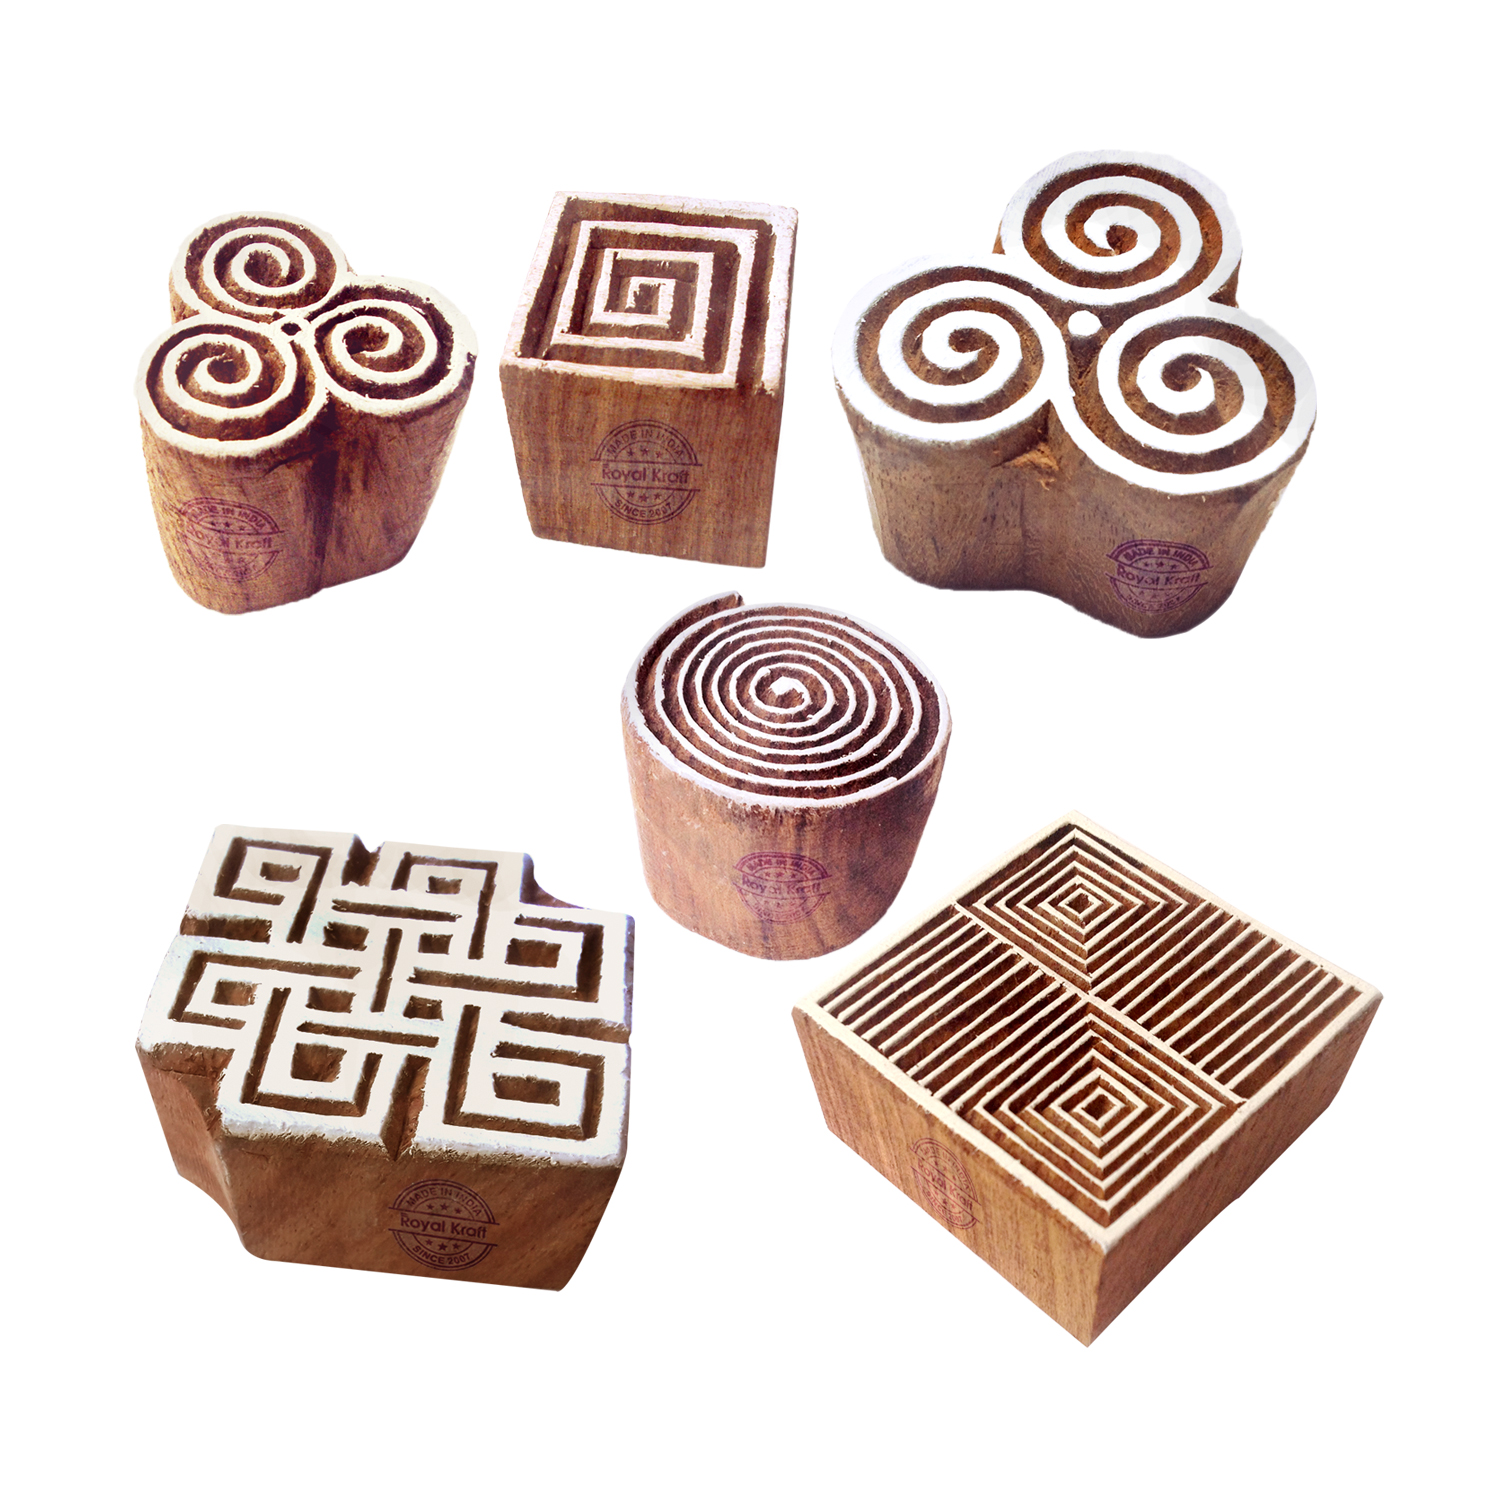 Square Printing Stamps 2.6 inches